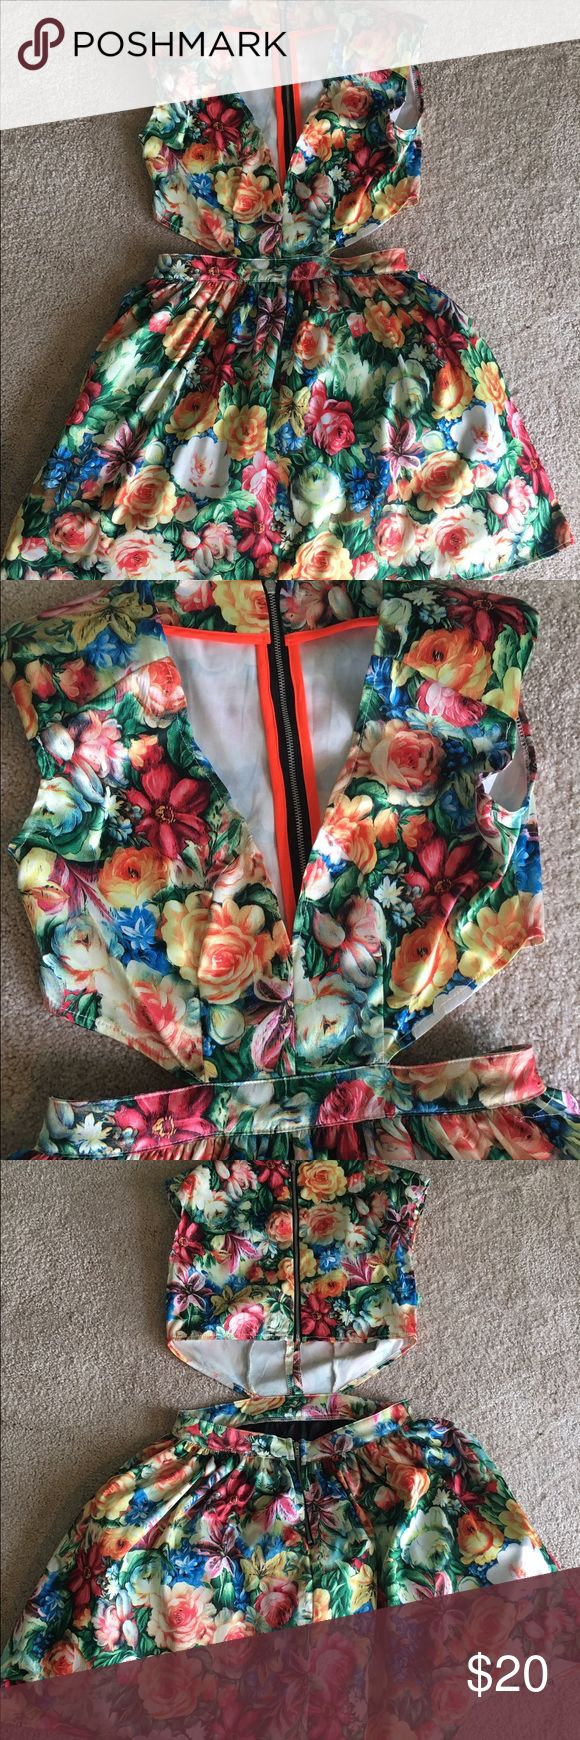 Flower Patterned Cut Out Dress Multi-colored flower patterned cut out dress. Excellent condition! Great for spring and summer AKIRA Dresses Mini